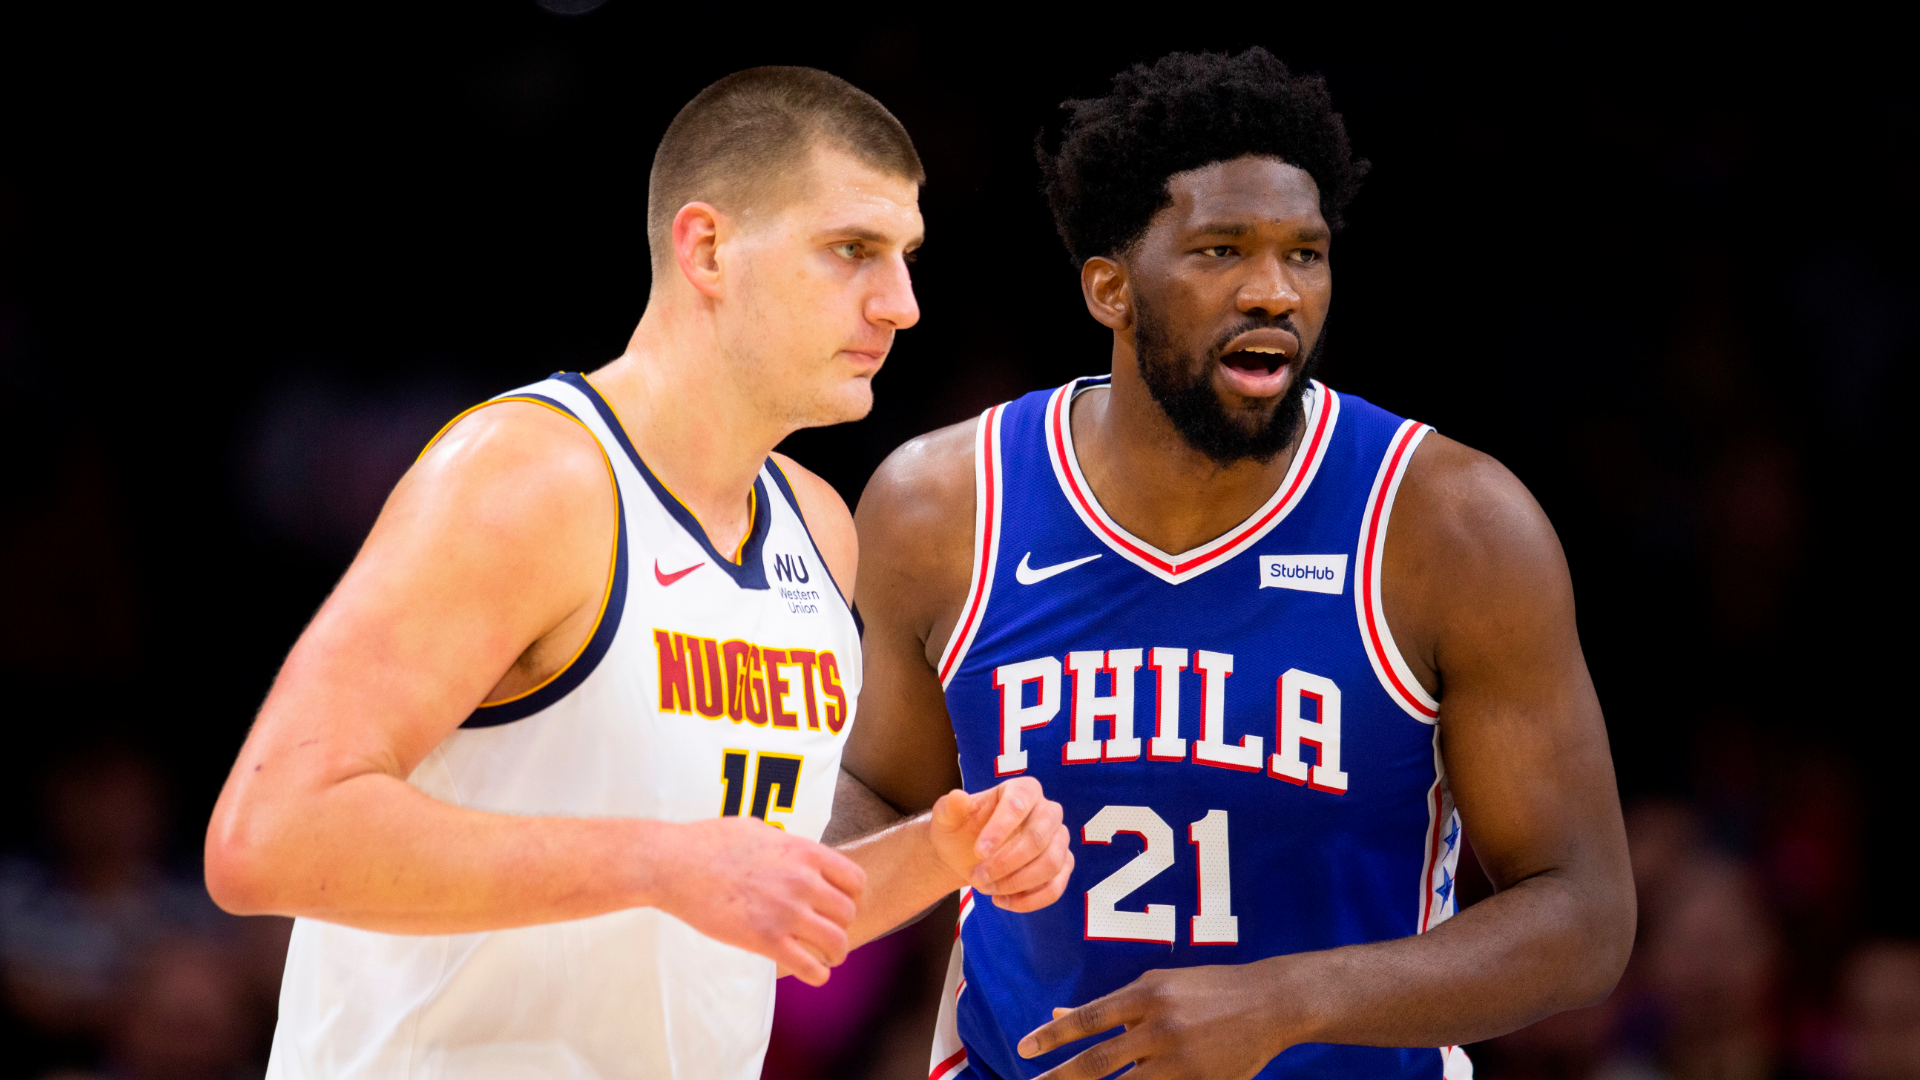 Led by Nikola Jokic and Joel Embiid, the centre position is thriving in the  NBA | NBA.com Canada | The official site of the NBA